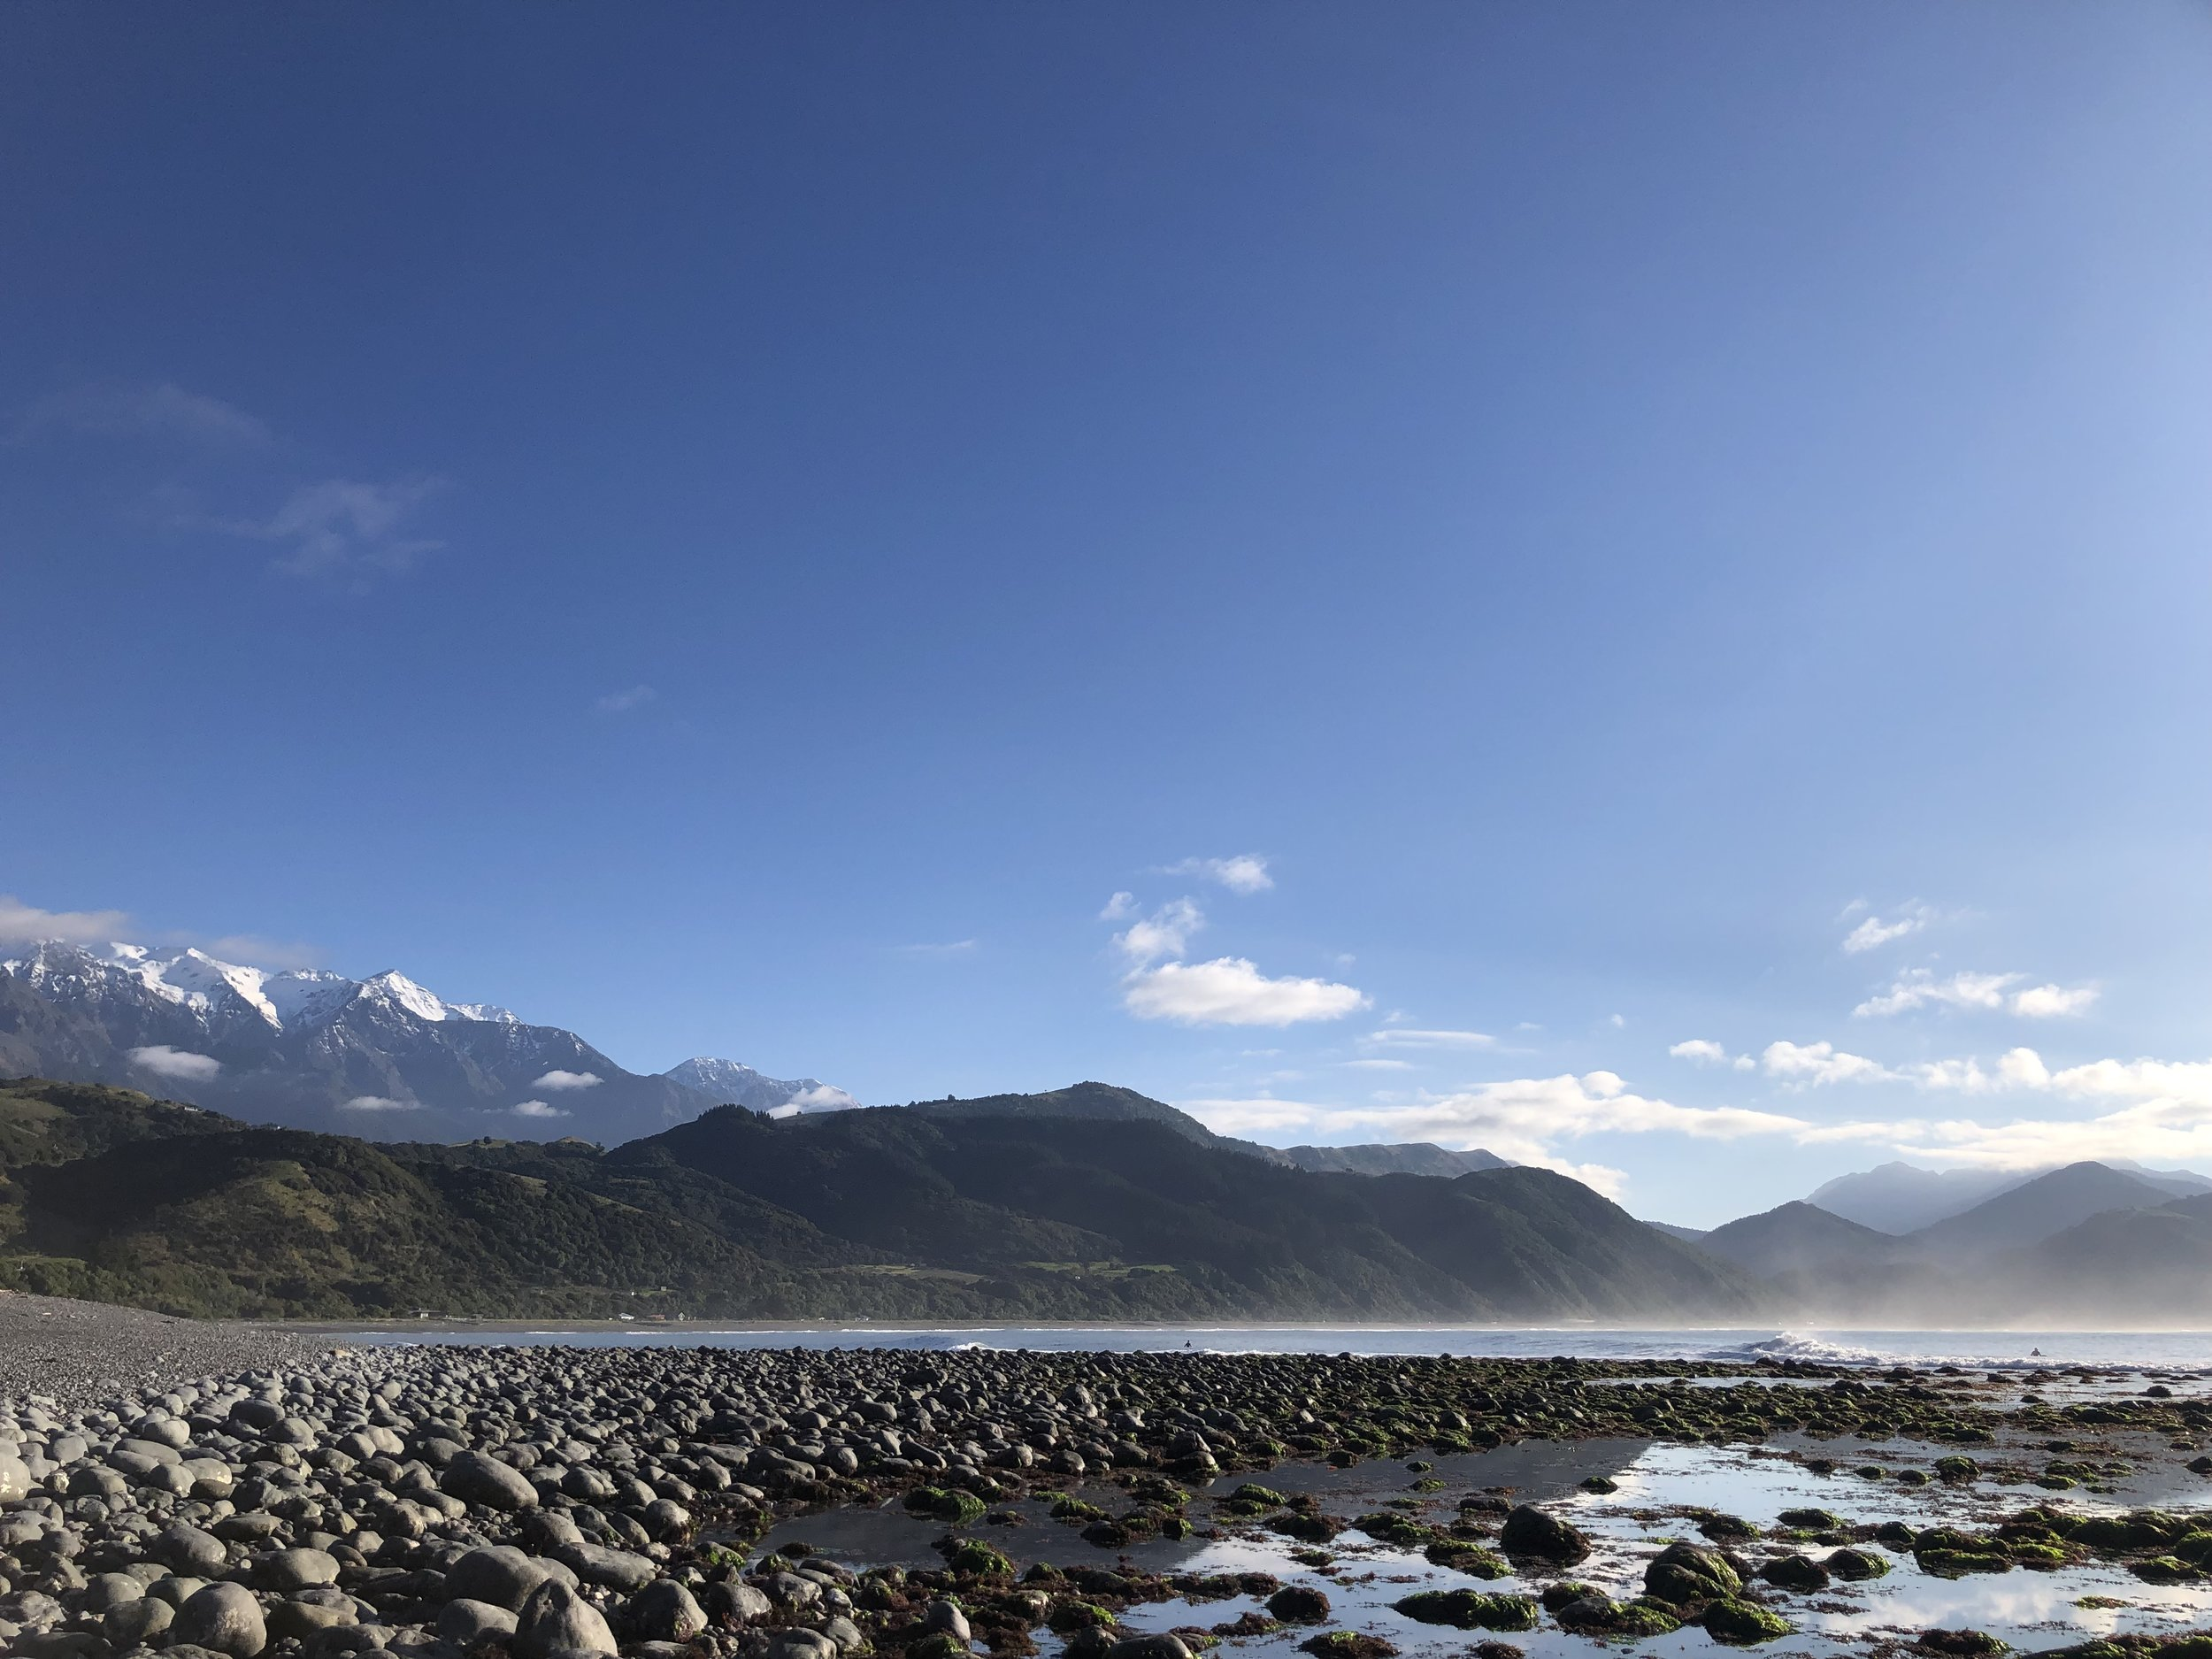 Kaikoura photo by Sunstone